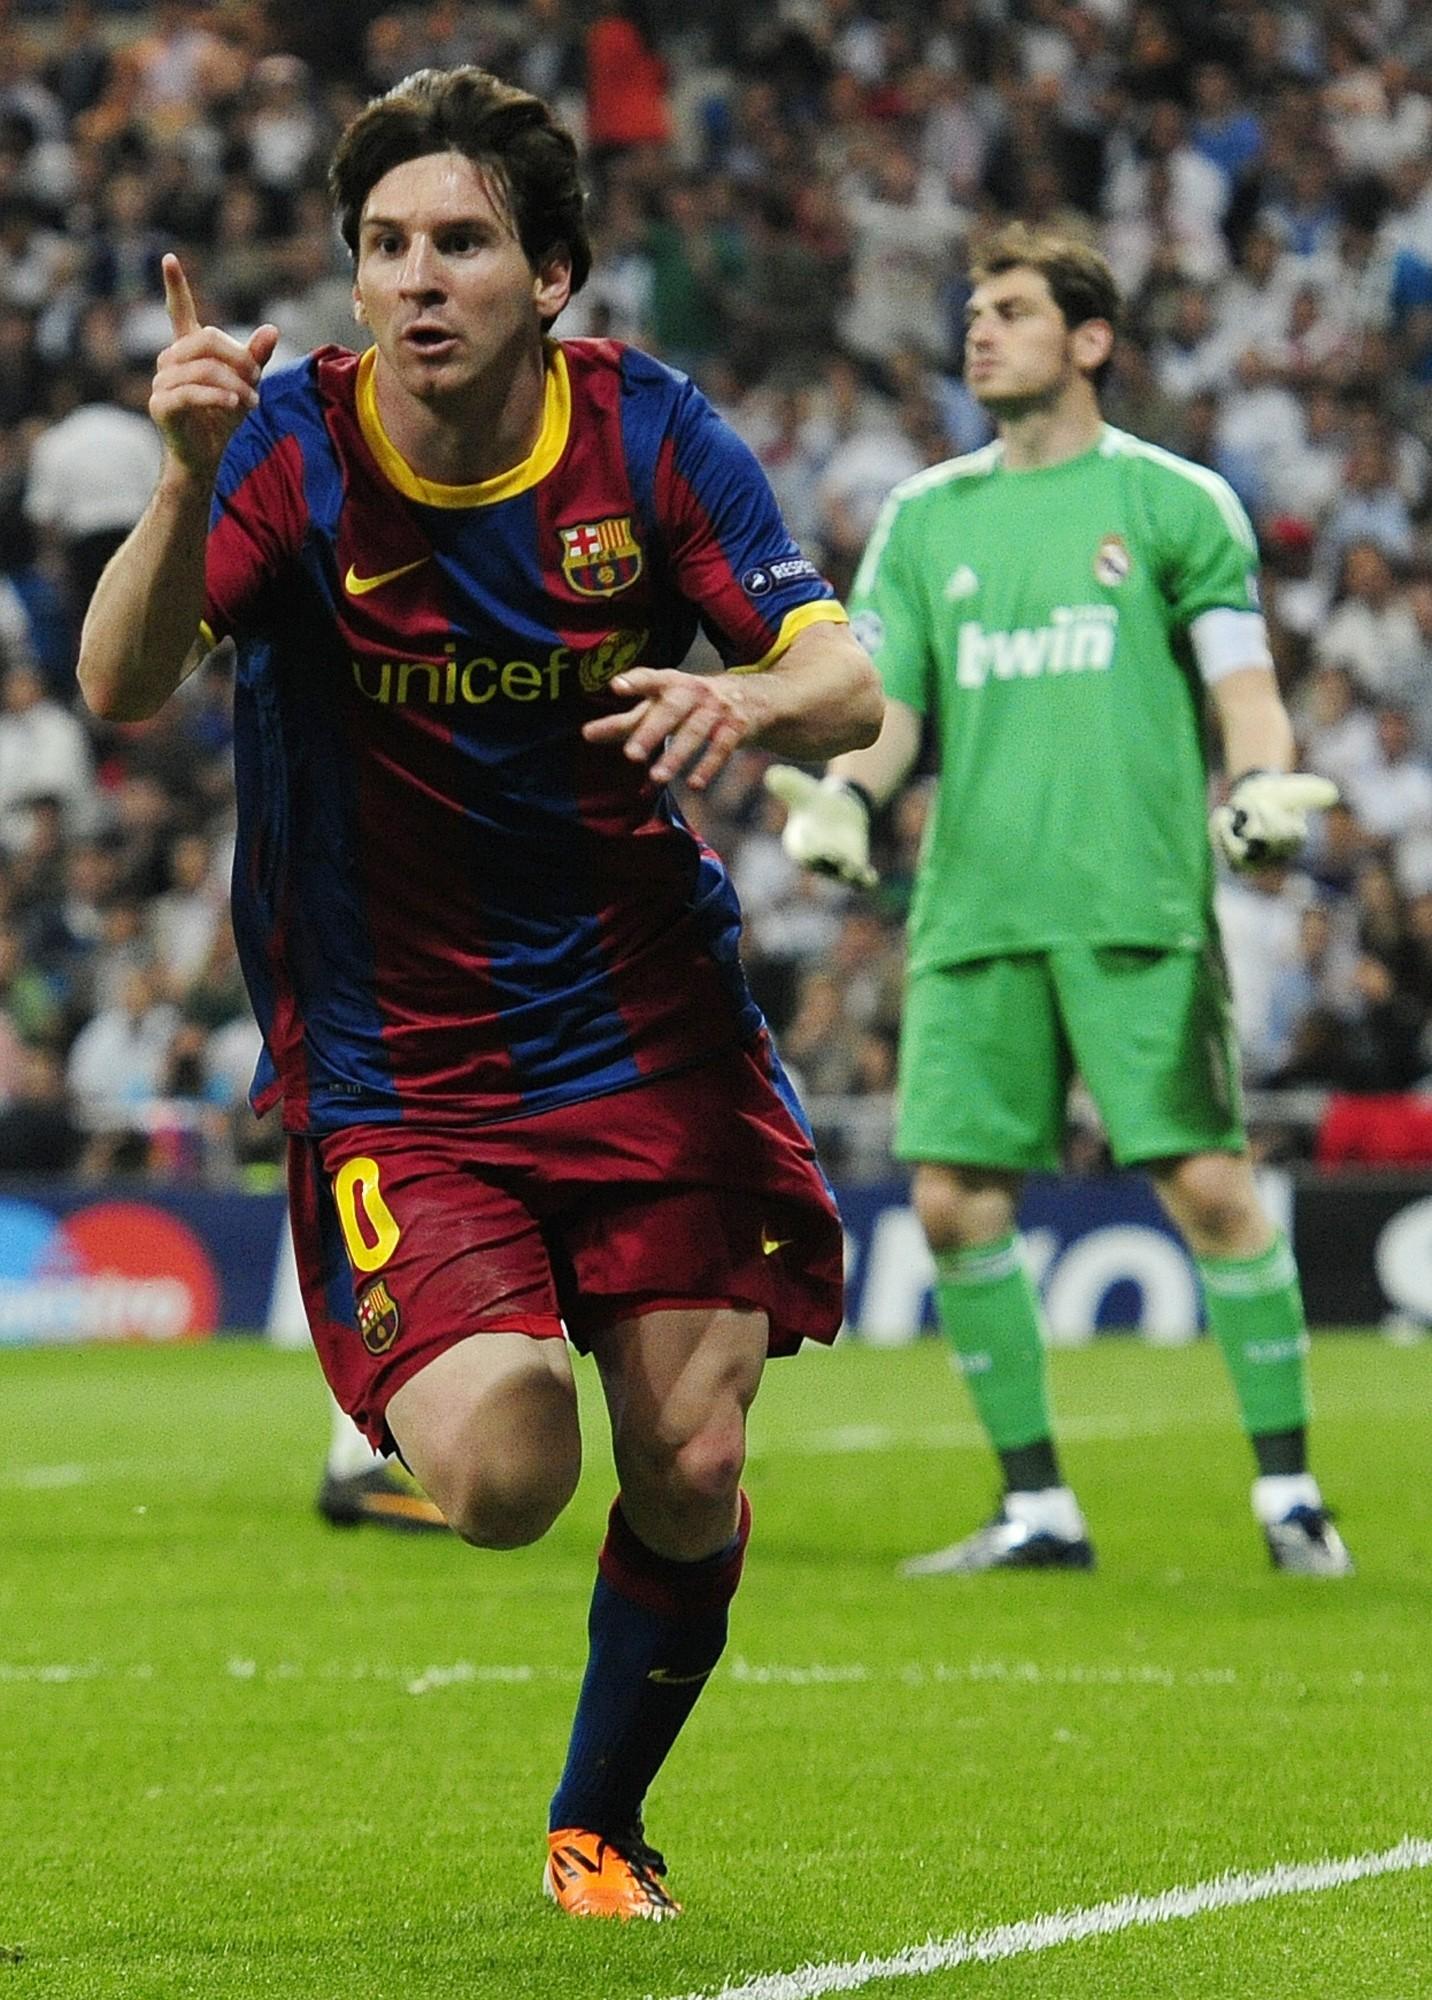 Real Madrid lionel messi FC Barcelona HD Wallpaper